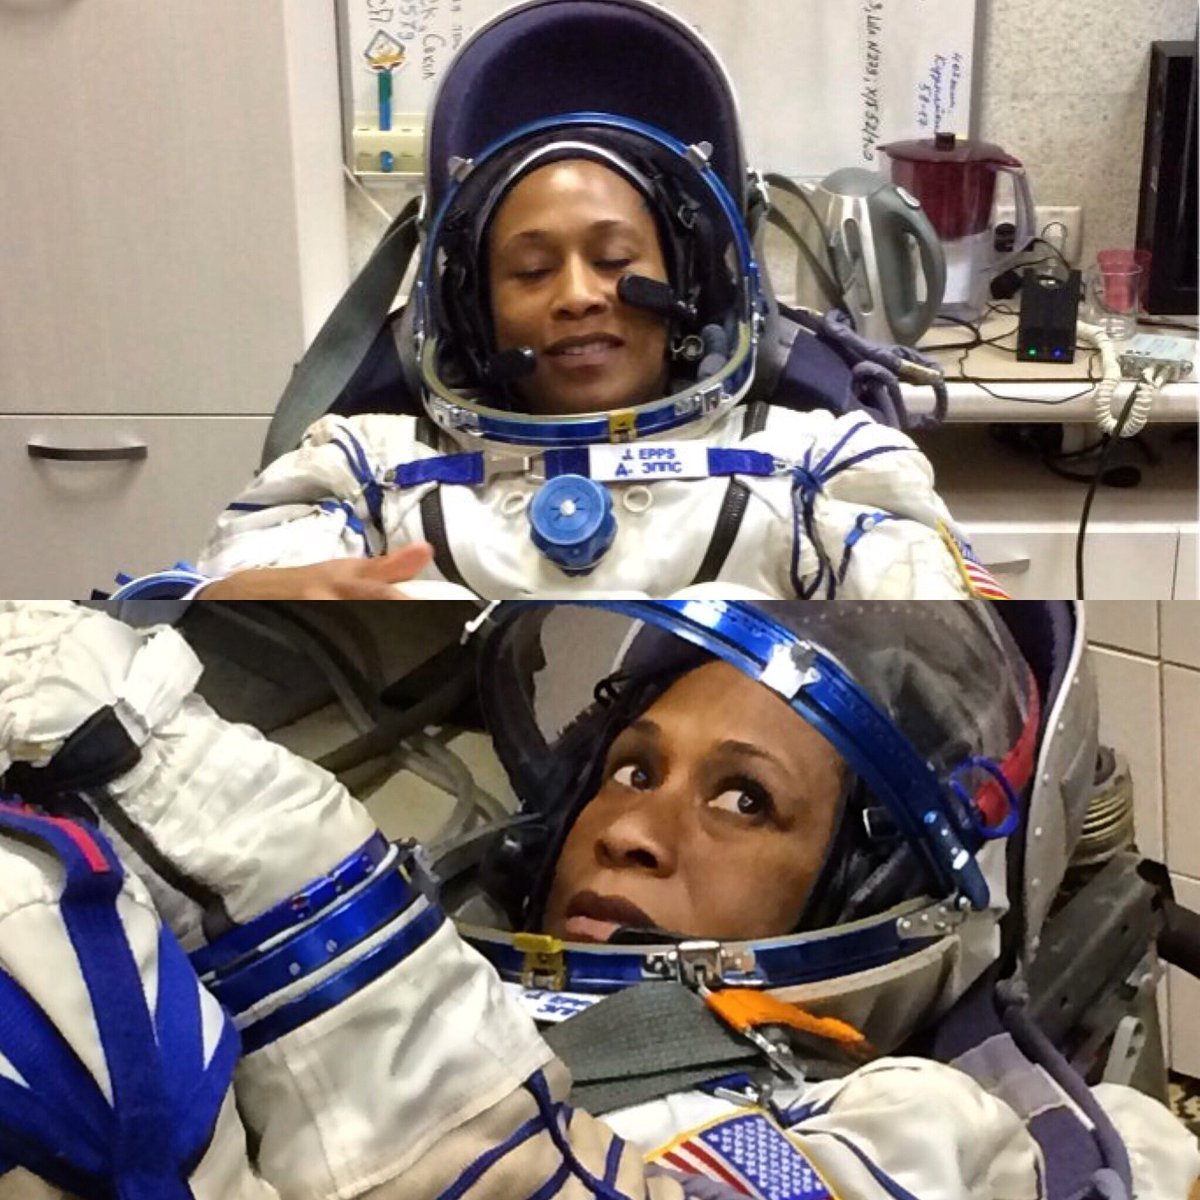 Jeanette J. Epps to Become First Black Astronaut to Board ...